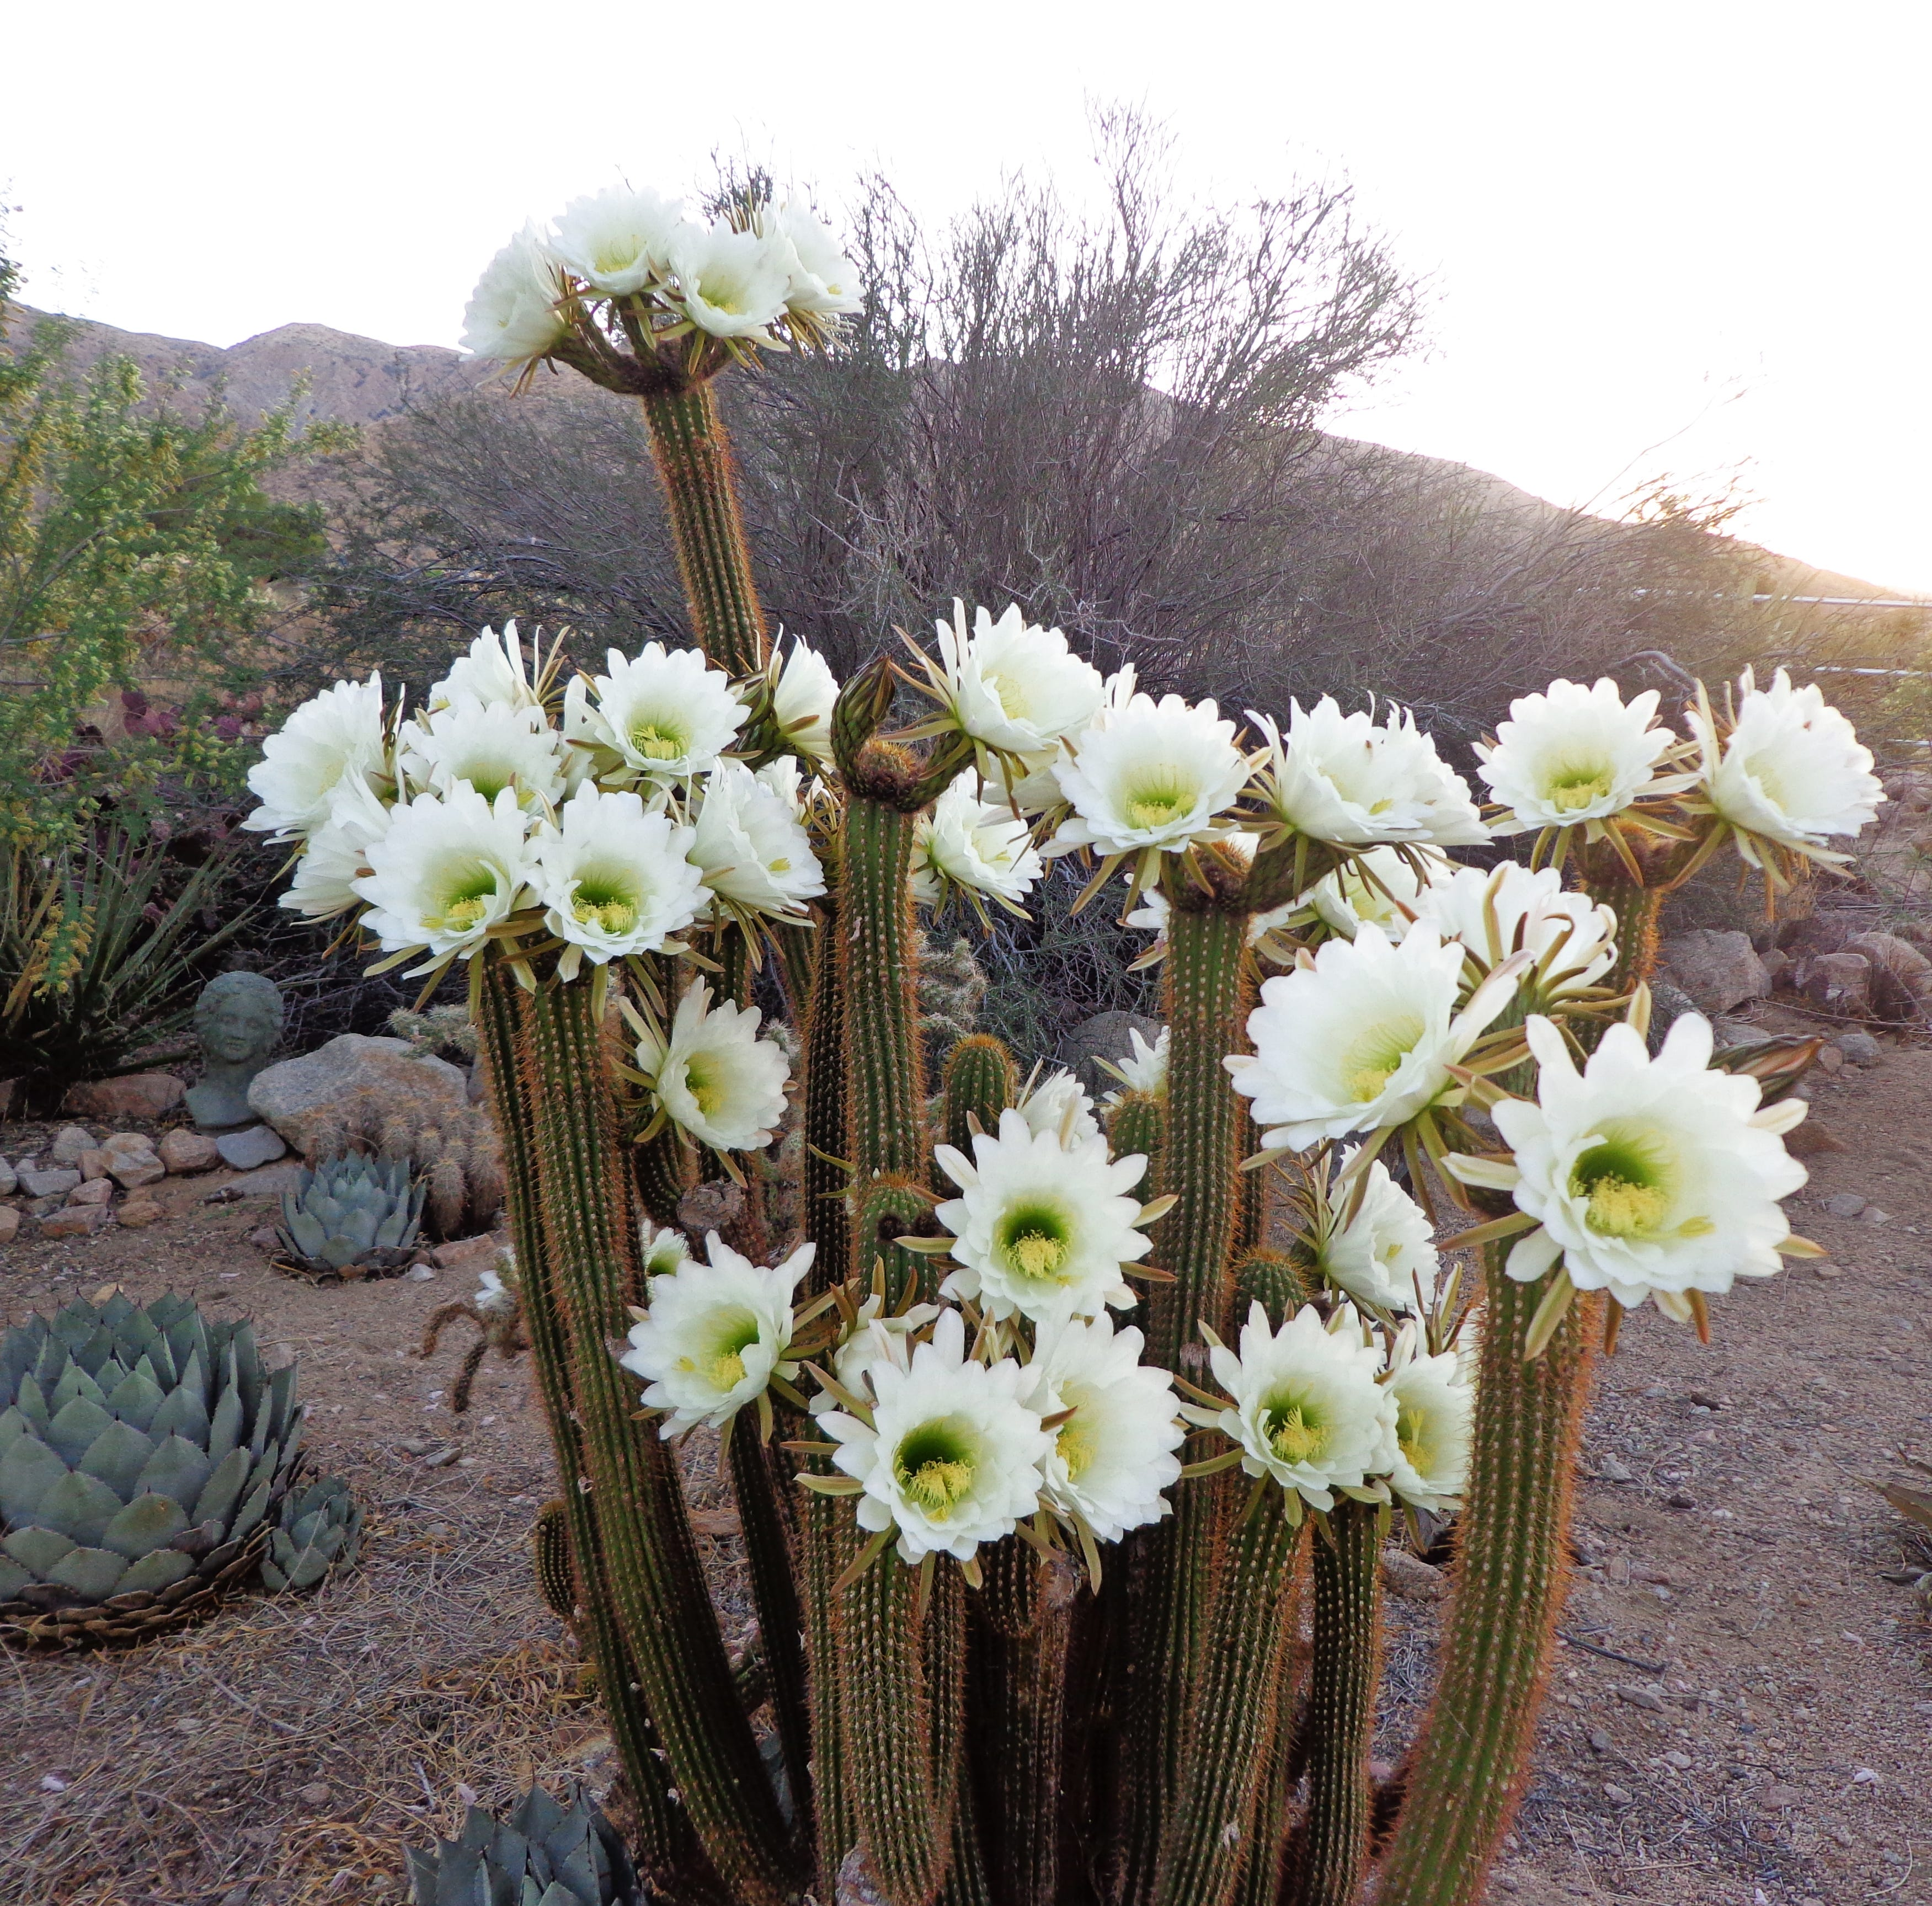 These cactuses bloom in the dead of night. Now's the time to start planting them